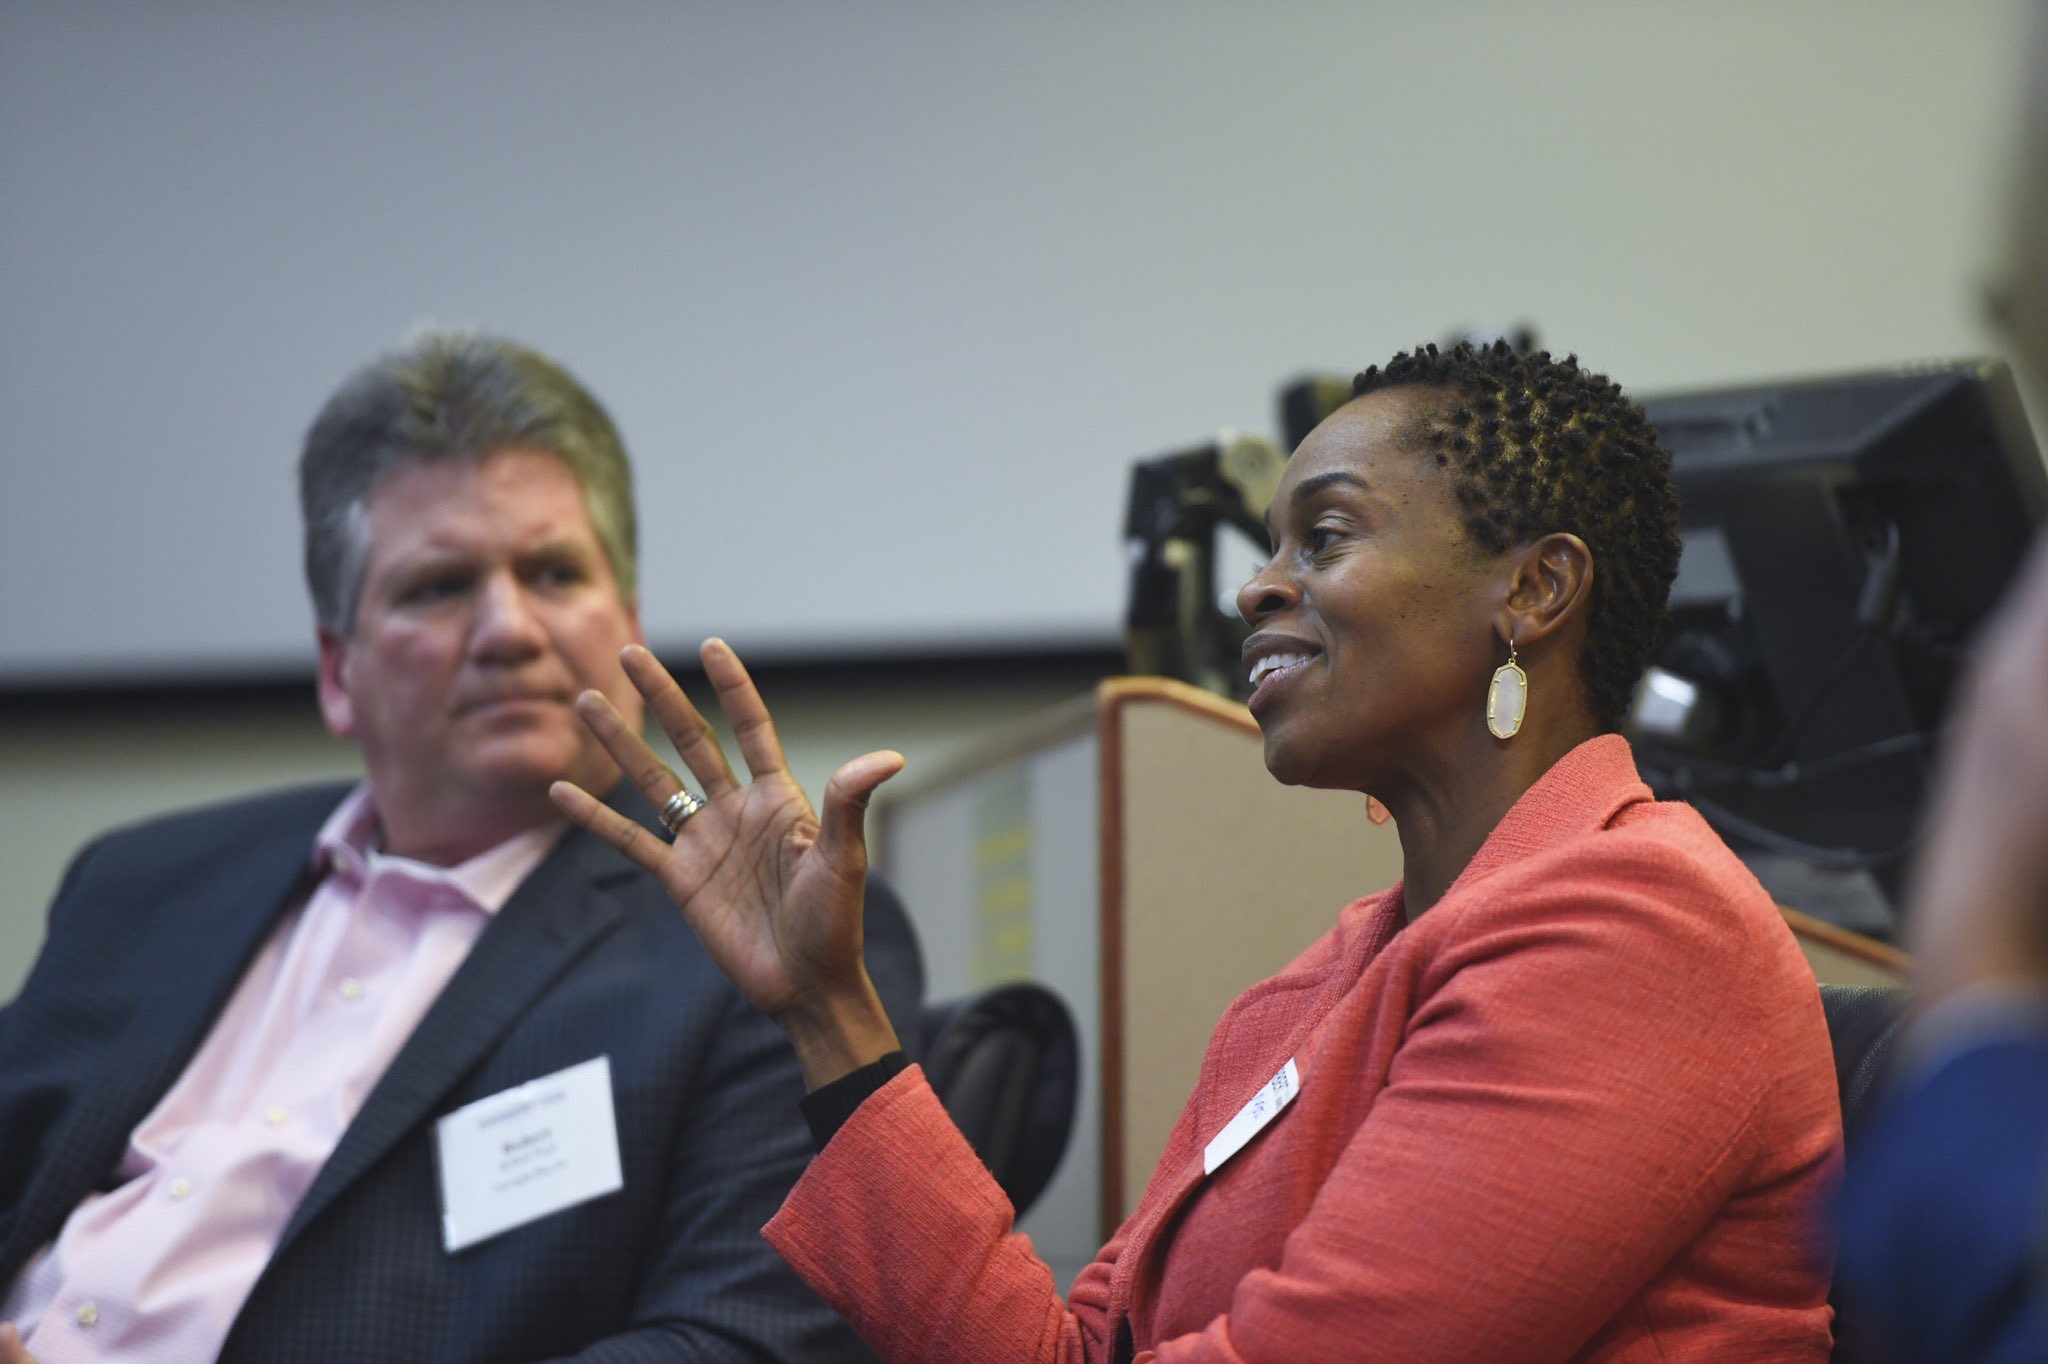 Four top industry executives explained the advantages of a diverse workforce at the college's Supply Chain Leadership Forum on Nov. 8